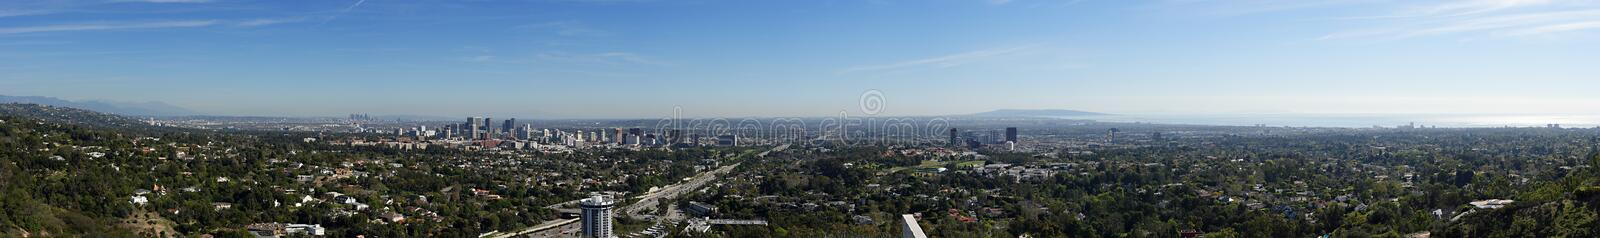 Download Los angeles stock photo. Image of nature, intersected - 33964318